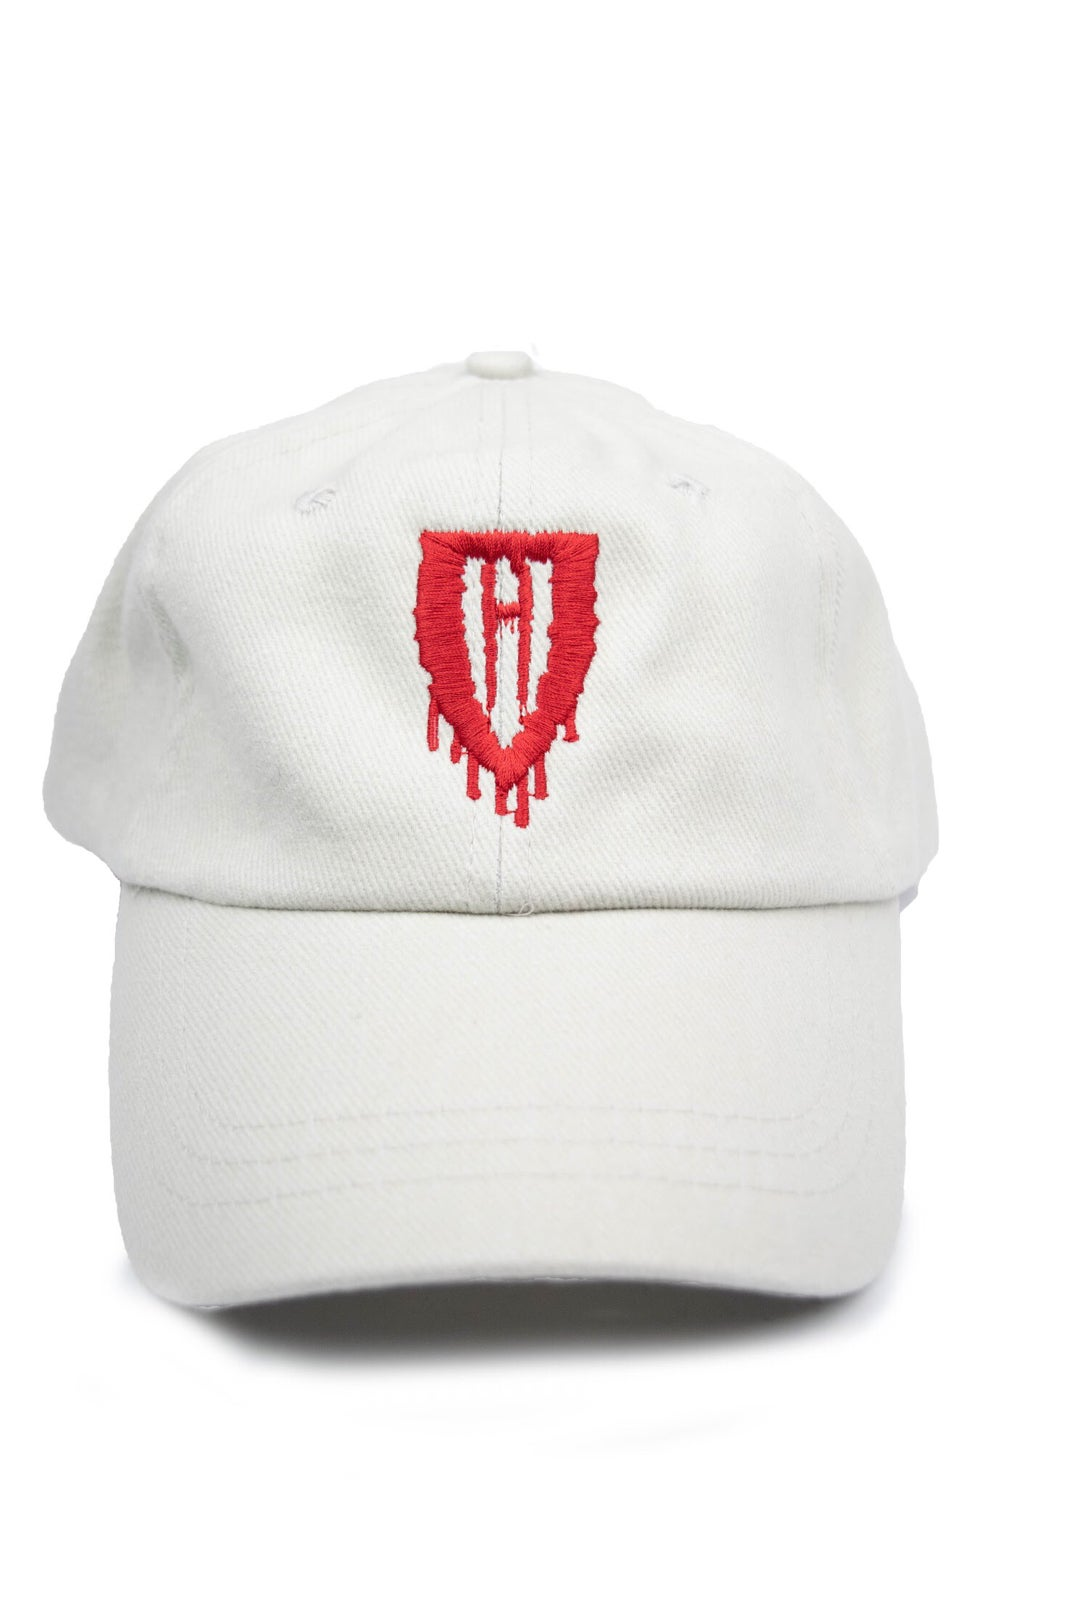 Image of OH Cap (Sand/Red)